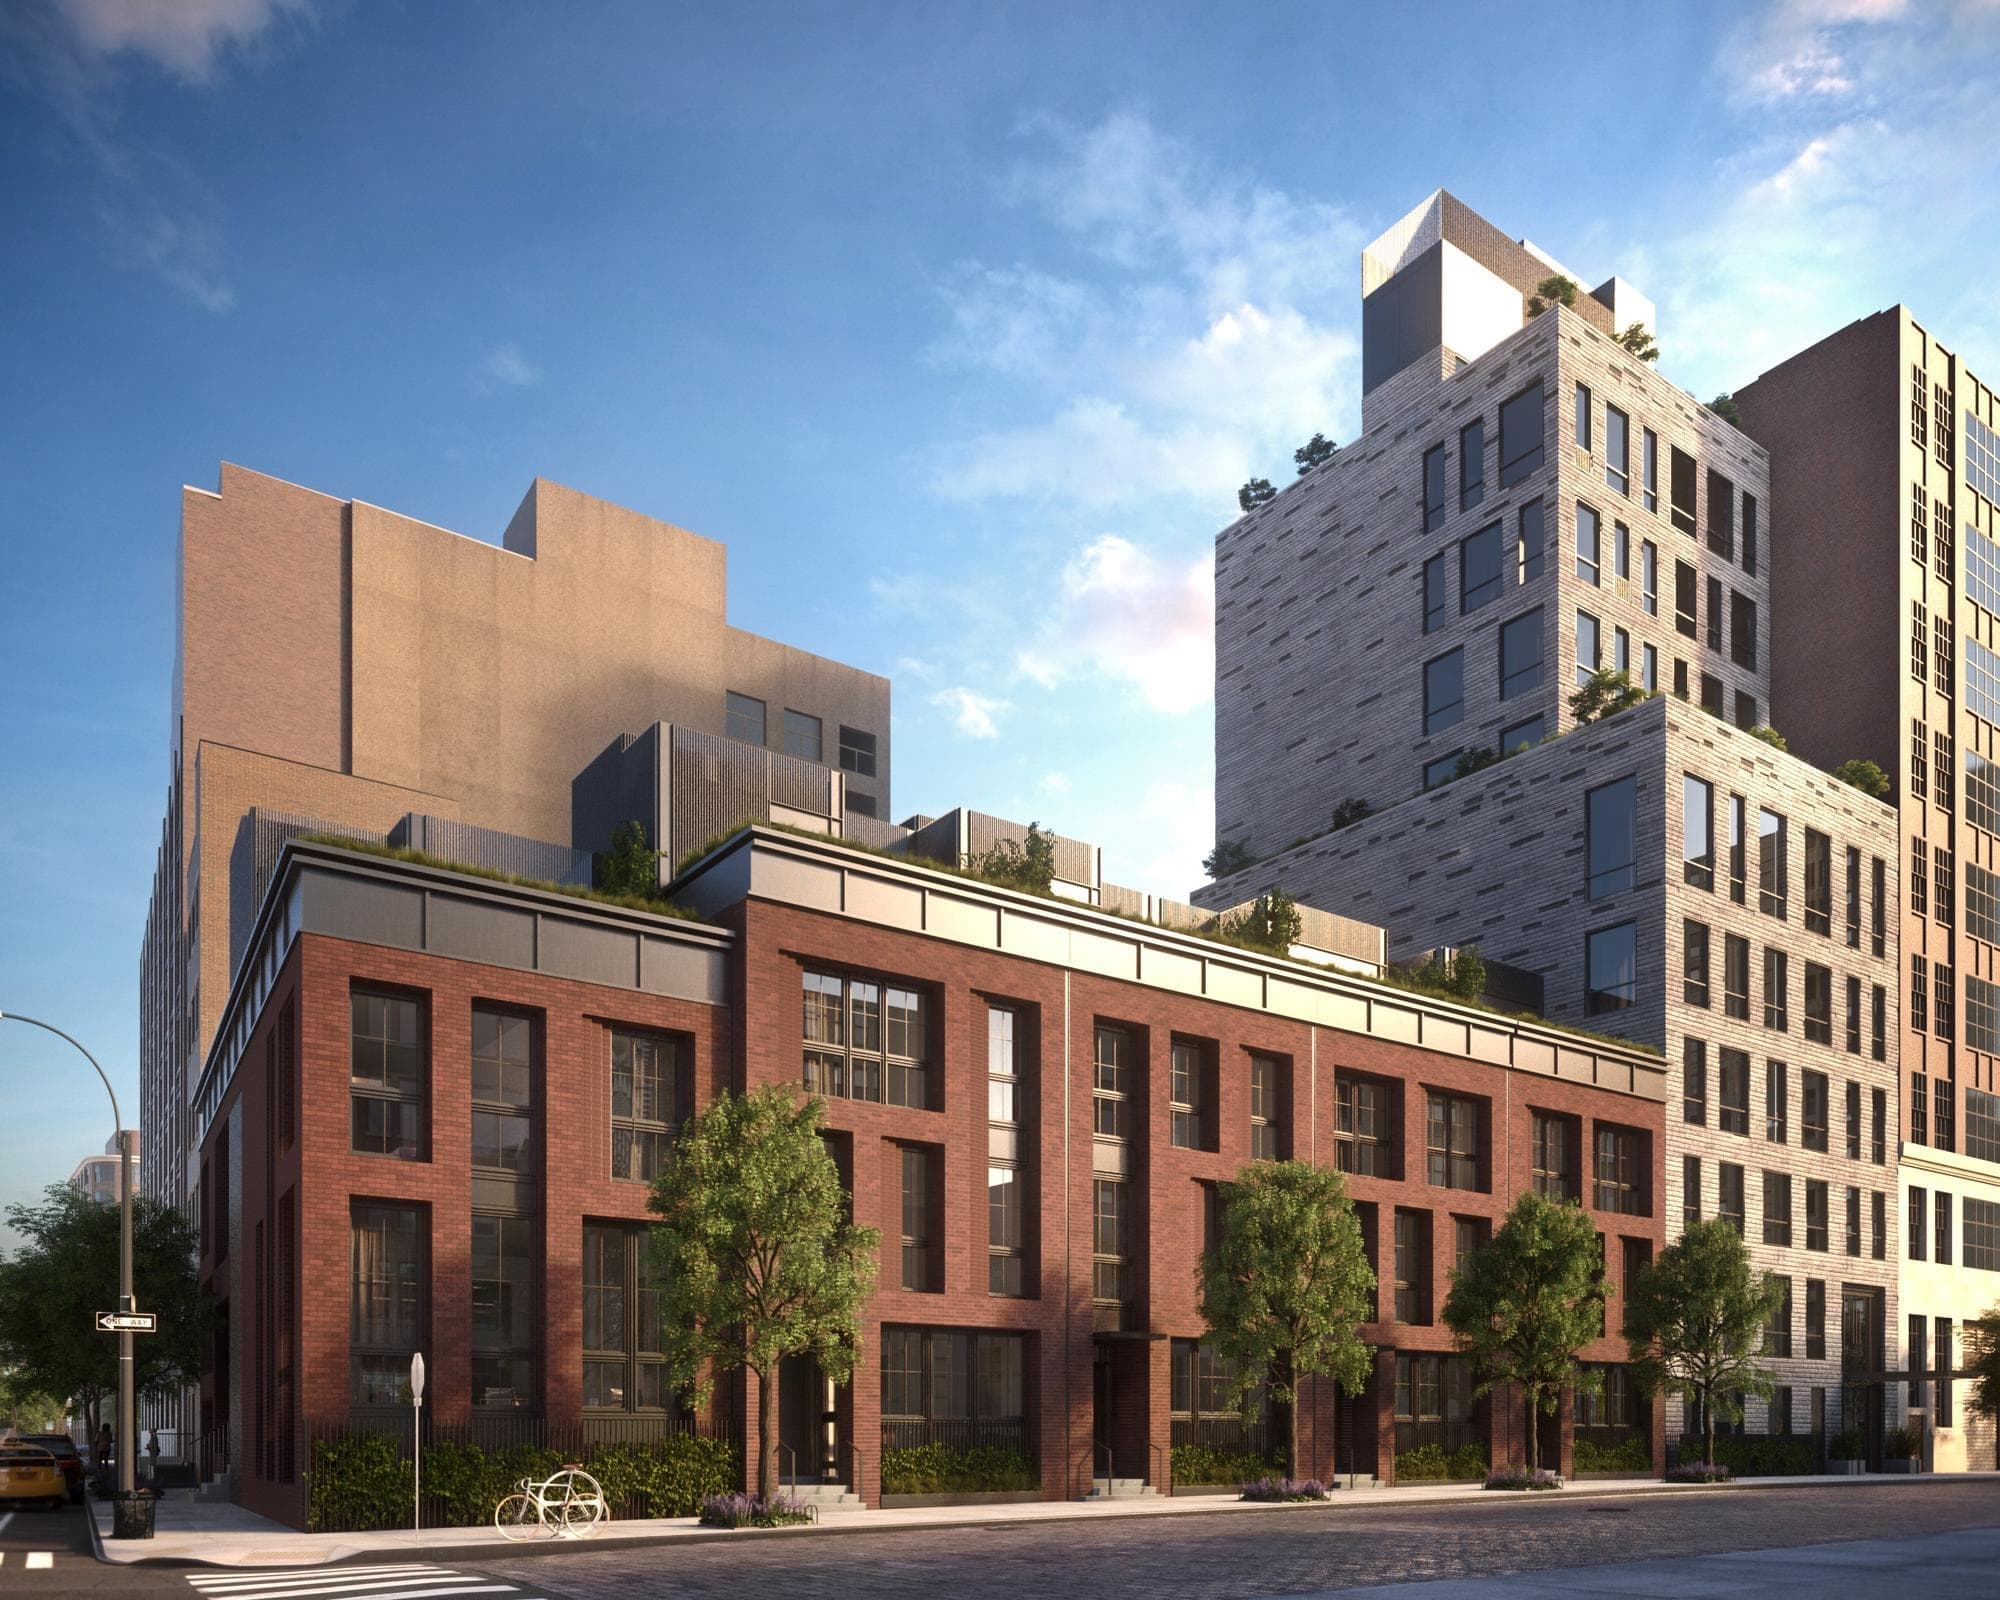 Rendering of a condominium townhouse development on 111 Leroy Street located in New York's West Village. MEP designed by 2L Engineering.